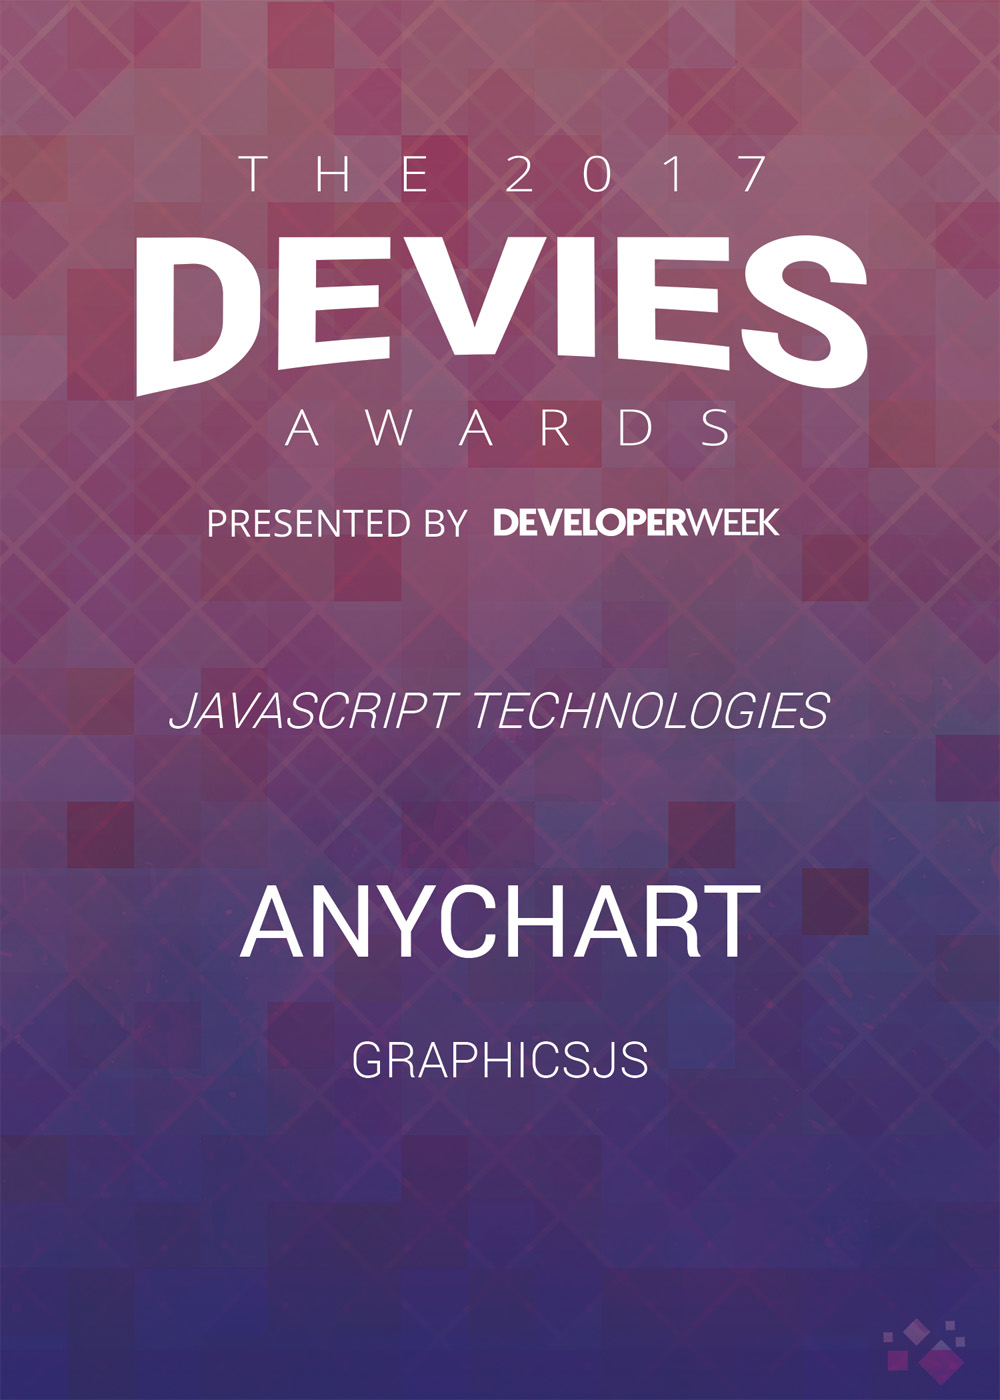 AnyChart is the winner of the Devies Awards in the JavaScript Technologies category with its powerful lightweight open-source graphics library GraphicsJS